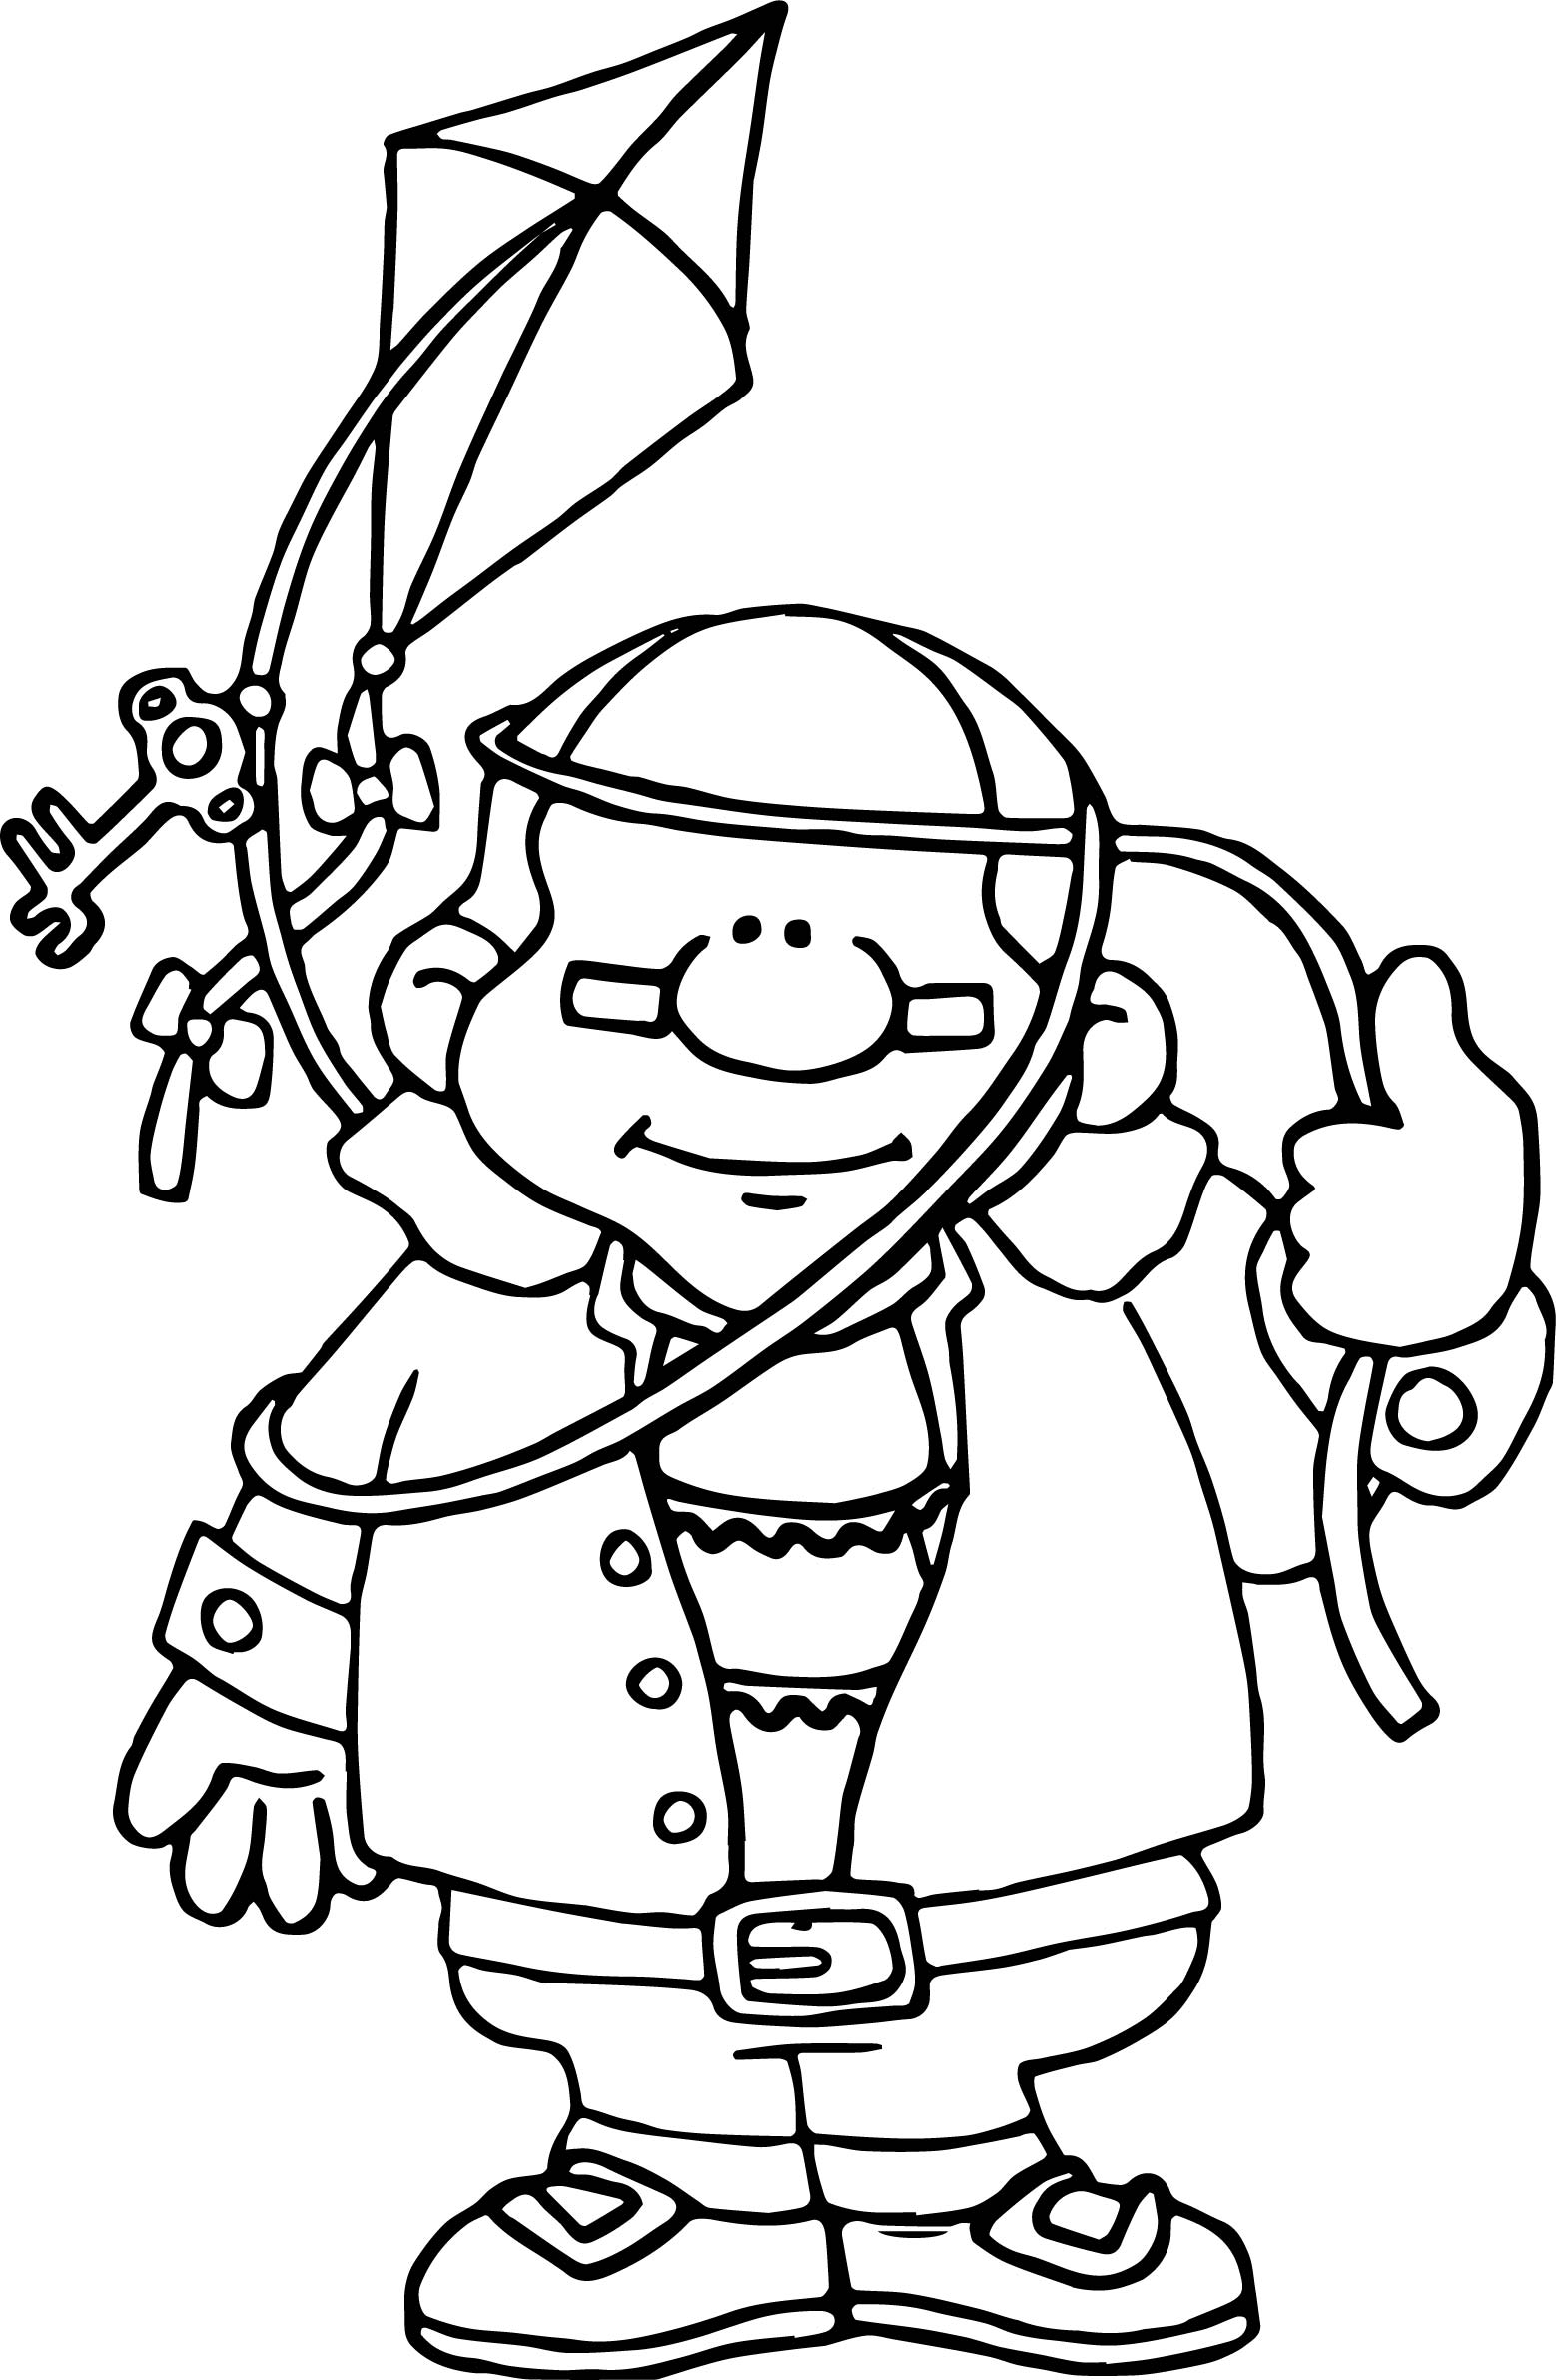 Ben Franklin Stove Coloring Pages Coloring Pages